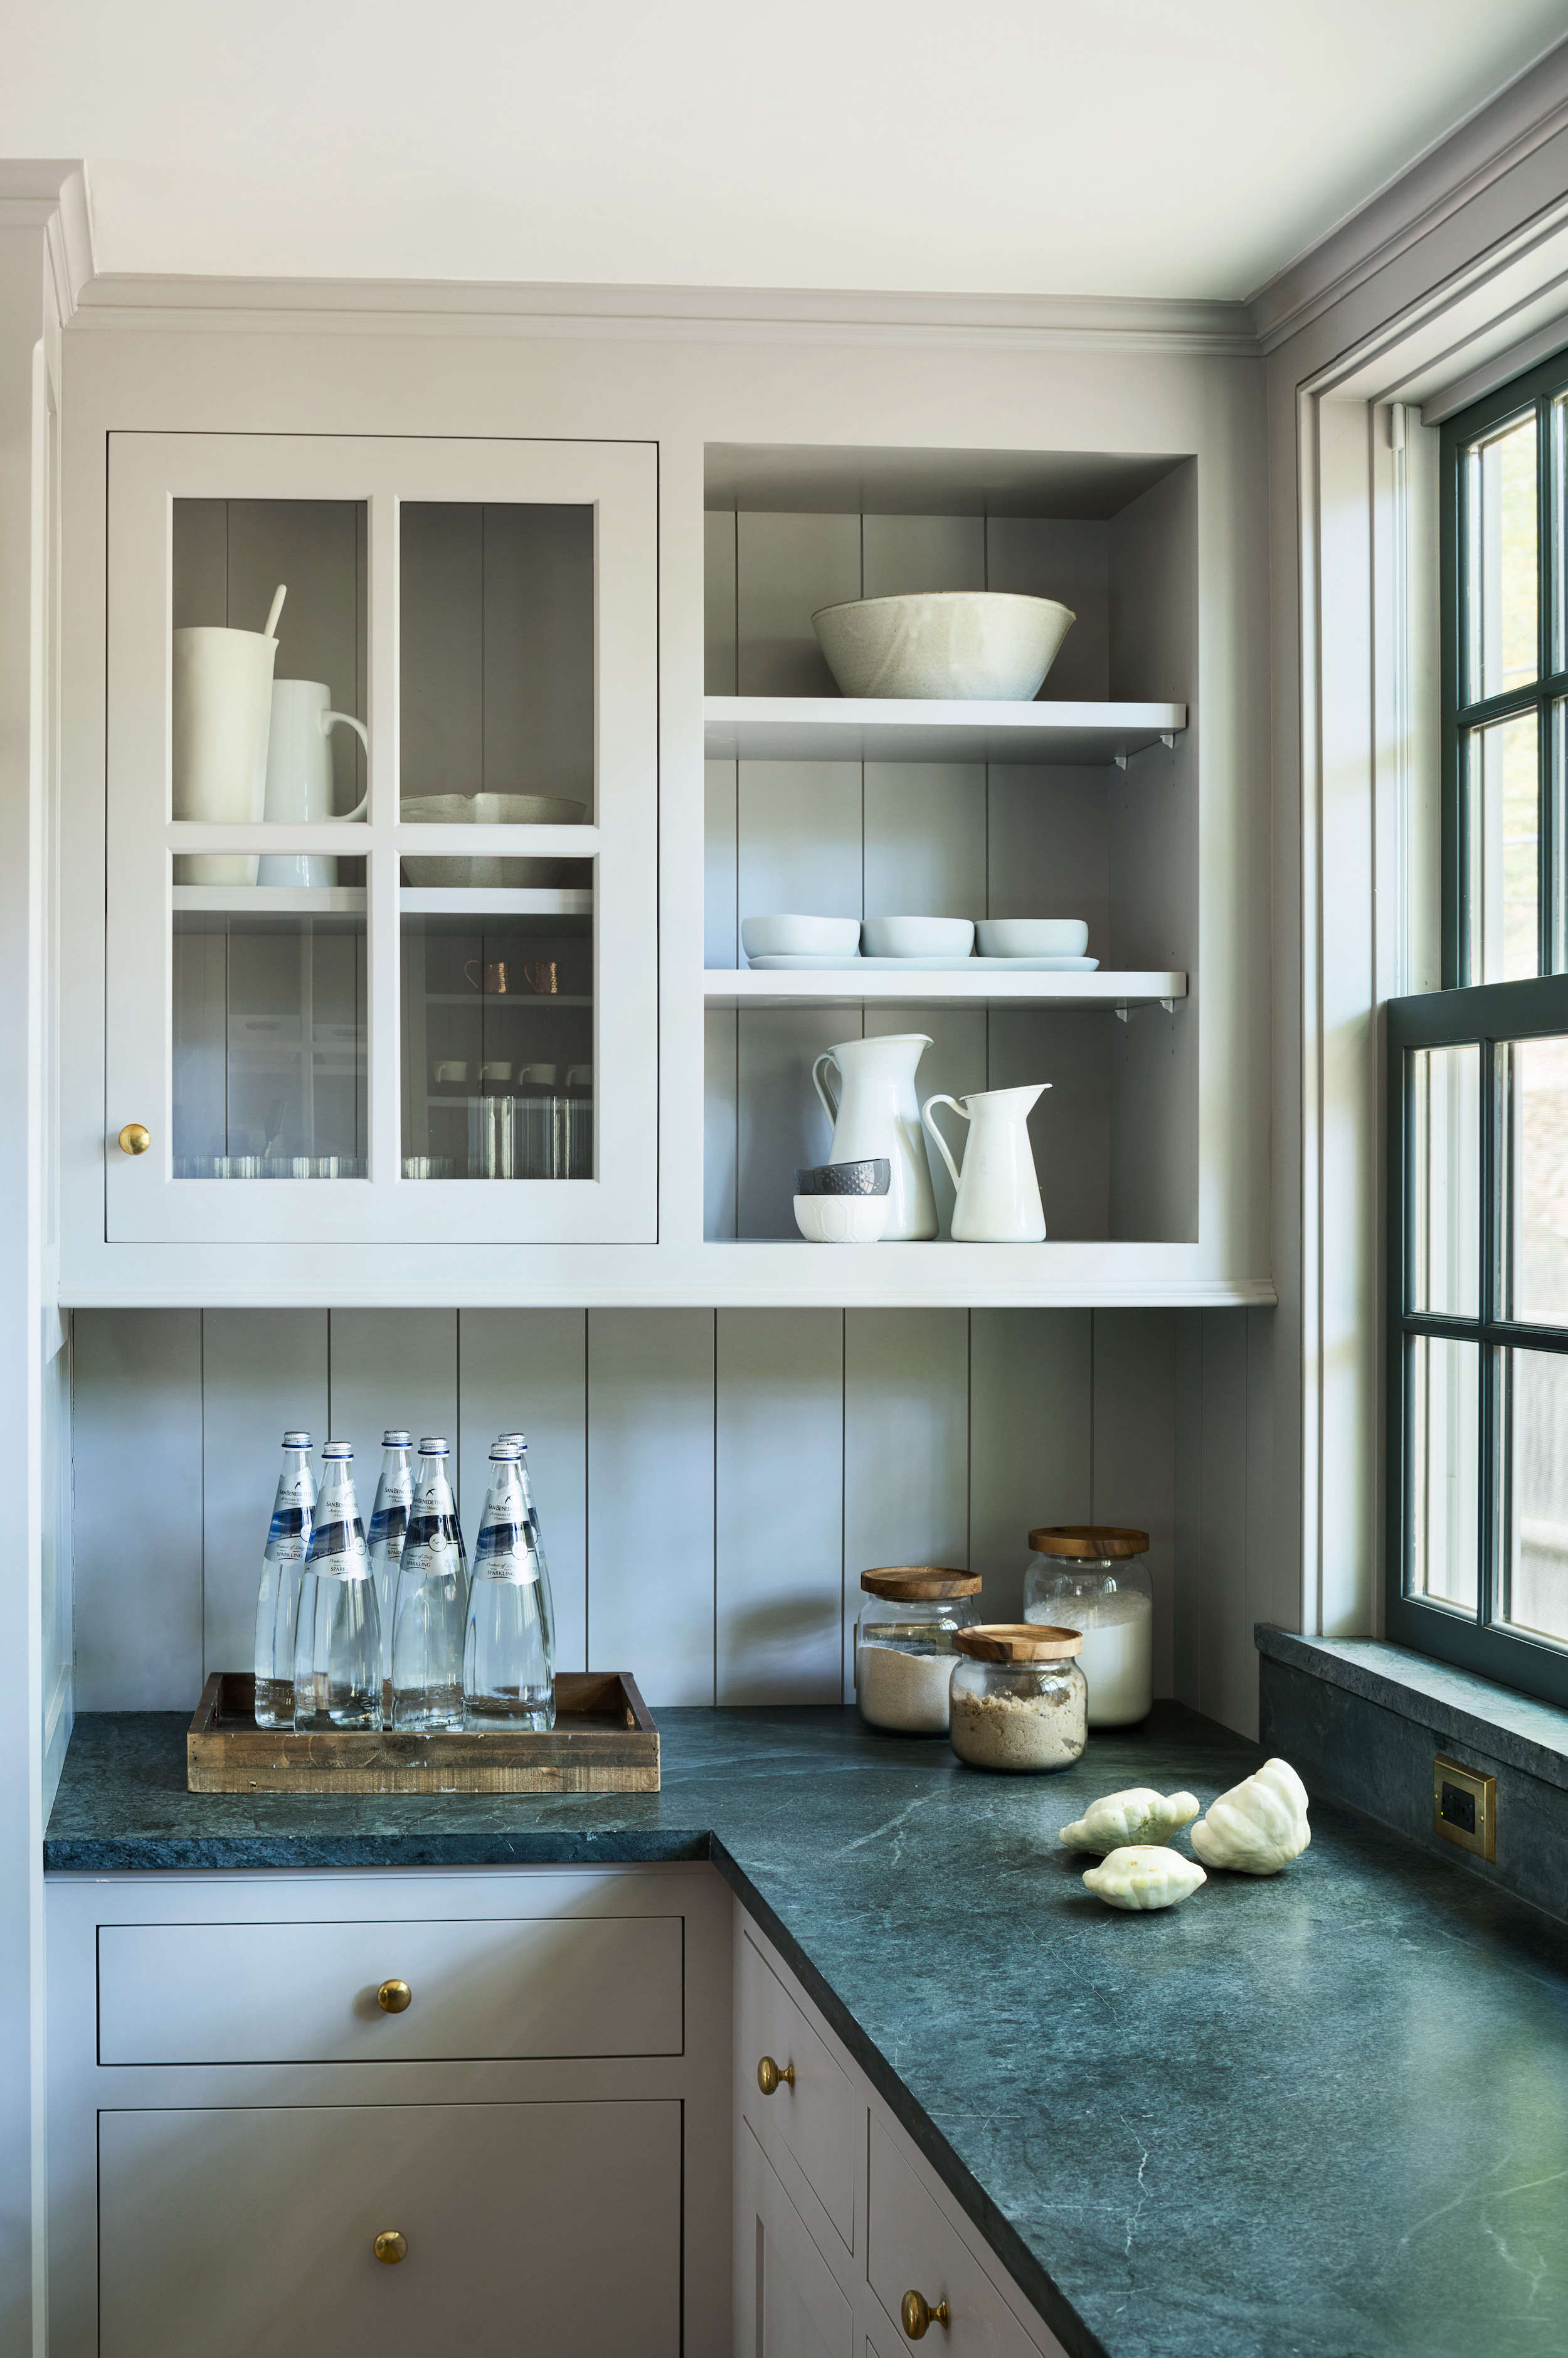 modern-farmhouse-kitchen-renovation-light-gray-cabinets-with-open-shelf-glass-front